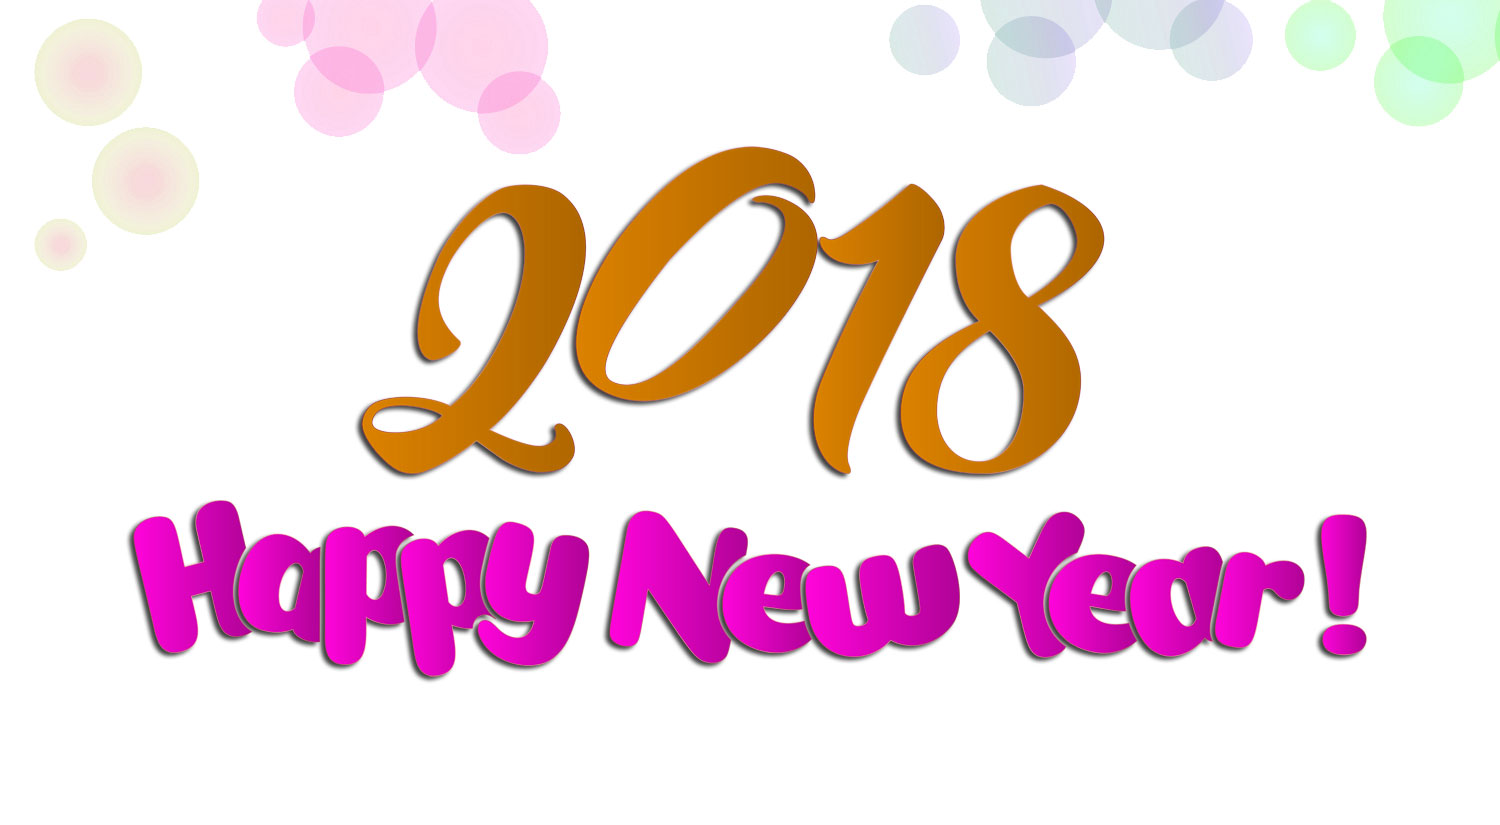 New Year Cakes, Happy New Year 2018 Cake Design and Taste | Happy ...